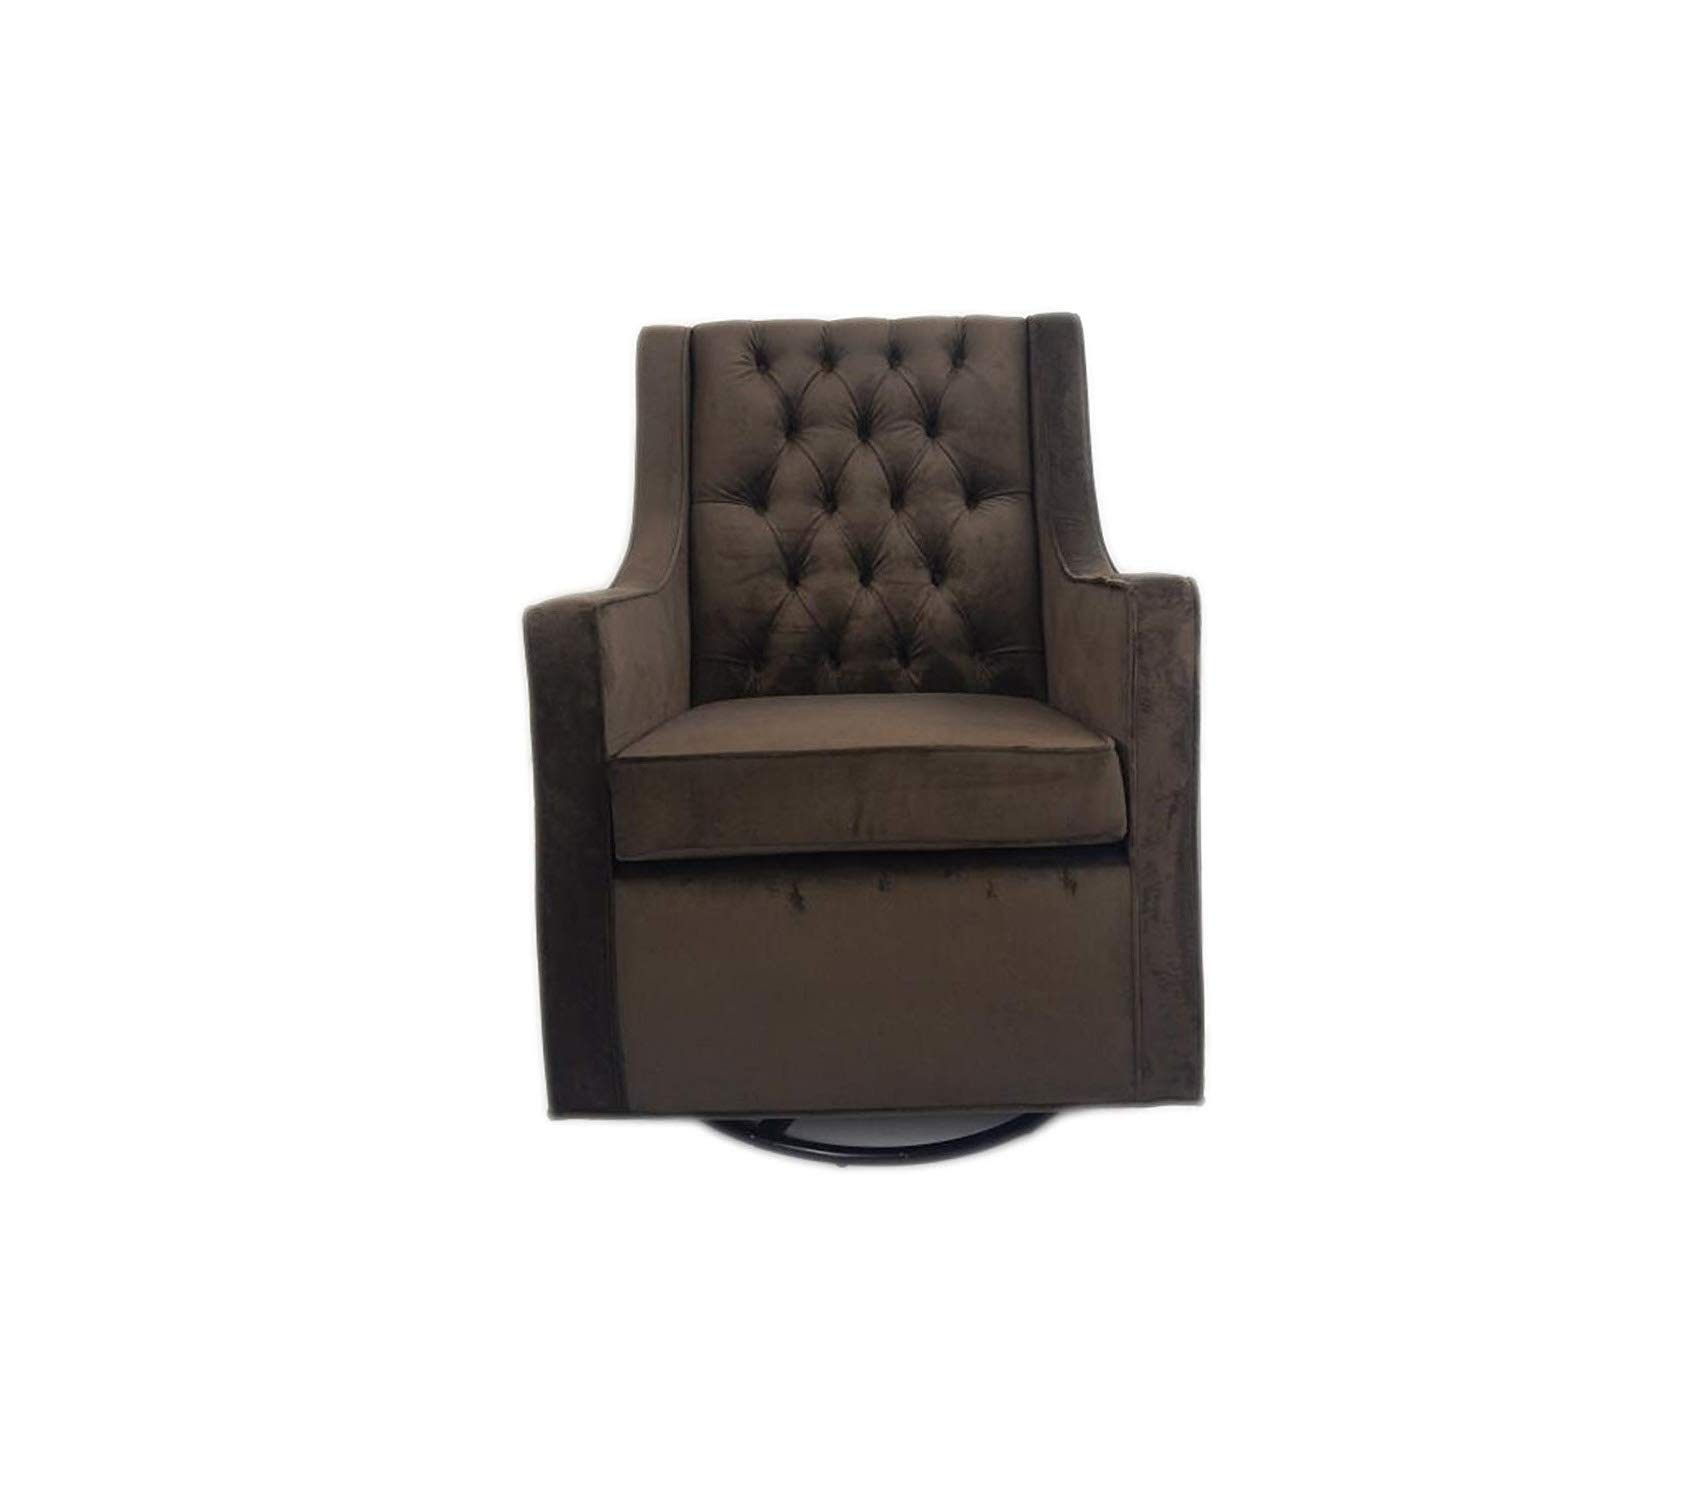 Wood & Style Deluxe Premium Collection Home Furnishings Tres Chic Glider Chocolate Decor Comfy Living Furniture by Wood & Style